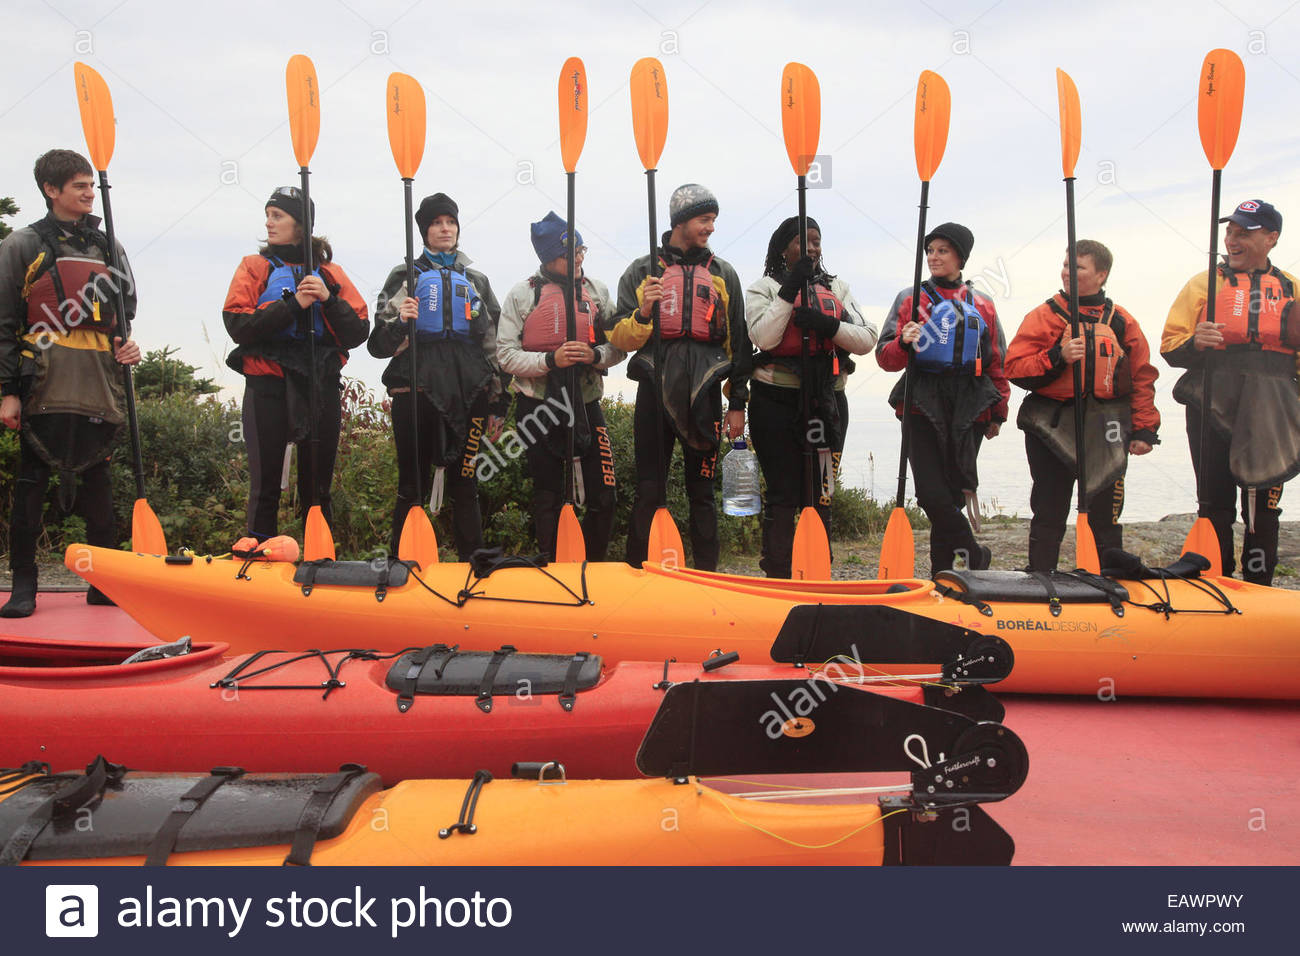 Kayakers with paddles wait to embark on an ecotour. - Stock Image